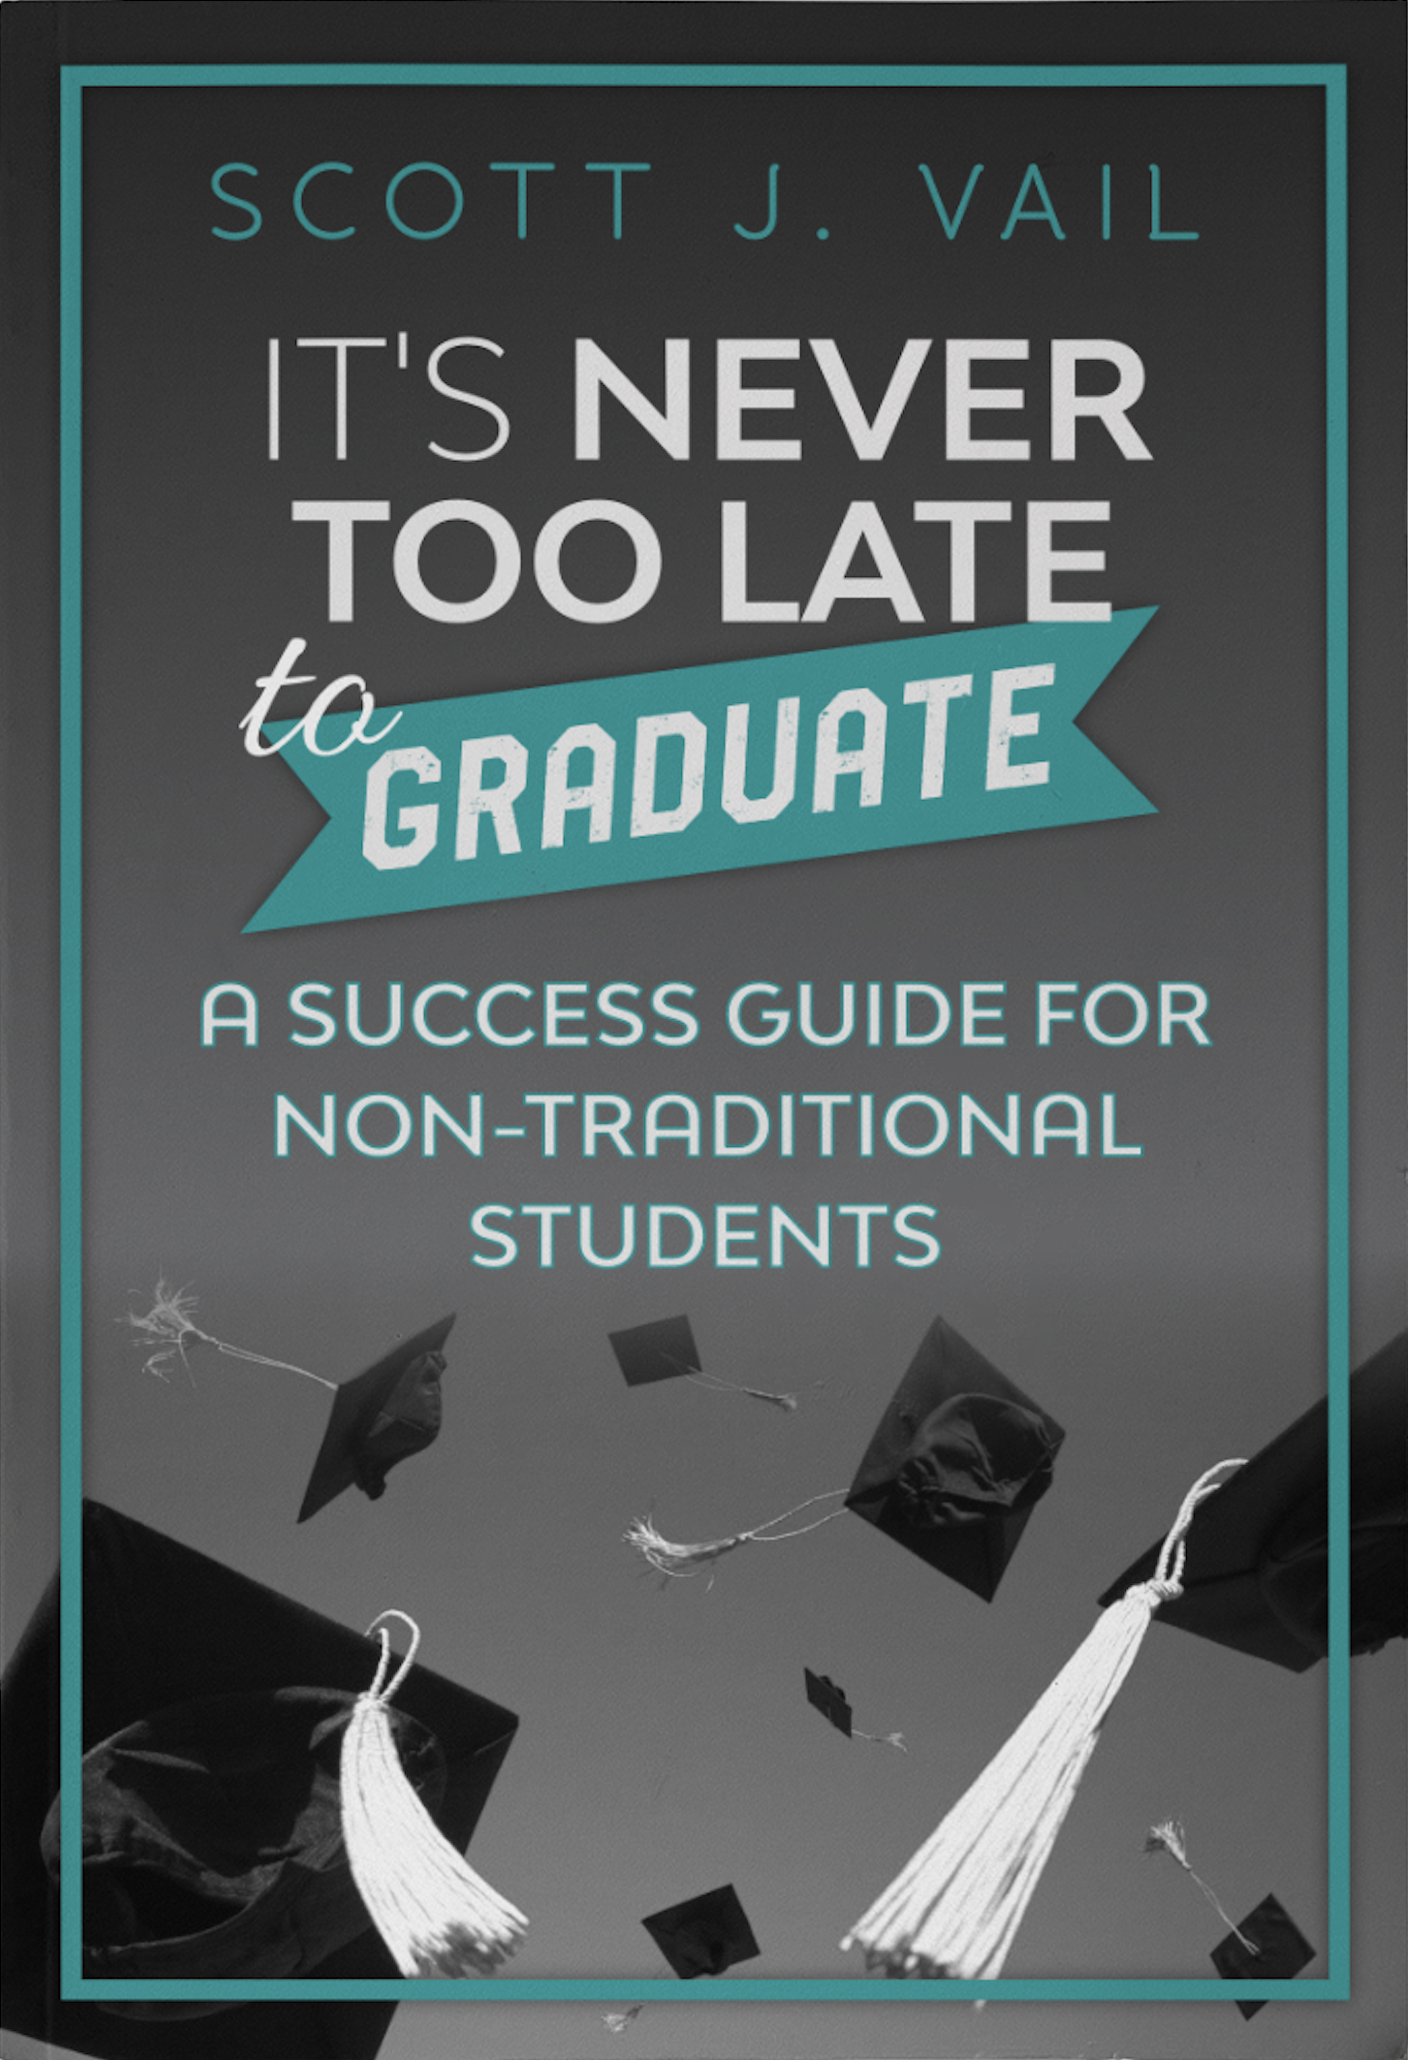 It's Never Too Late to Graduate - A Success Guide for Non-Traditional Students